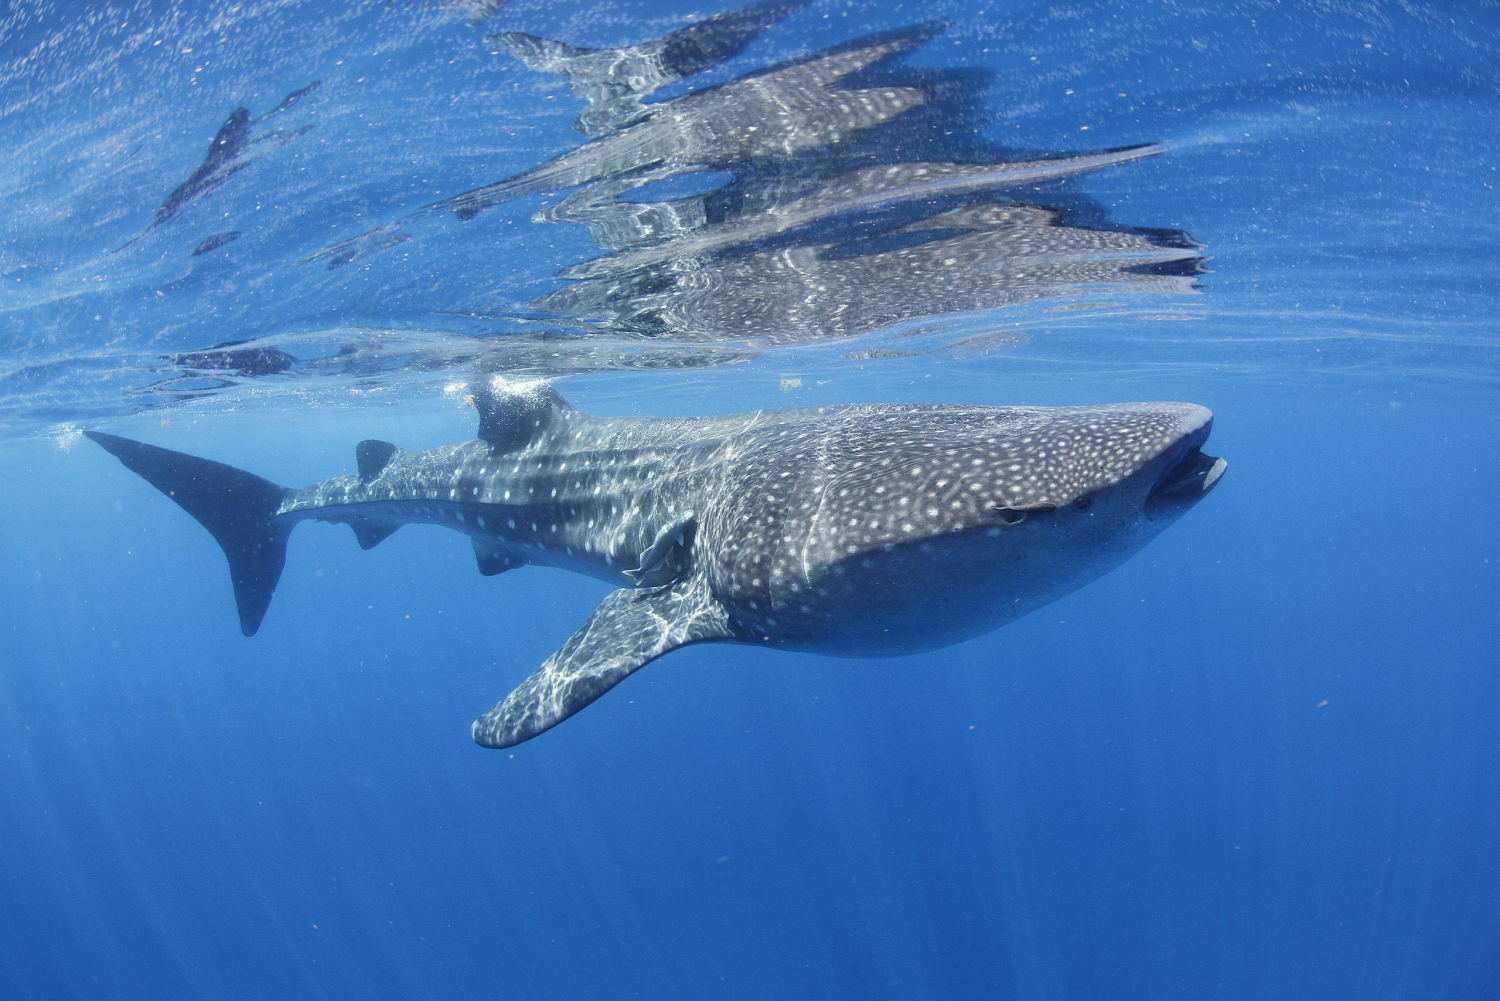 Snorkel WorldWide Presents: Snorkel Tour With The Pelagic Whale Shark